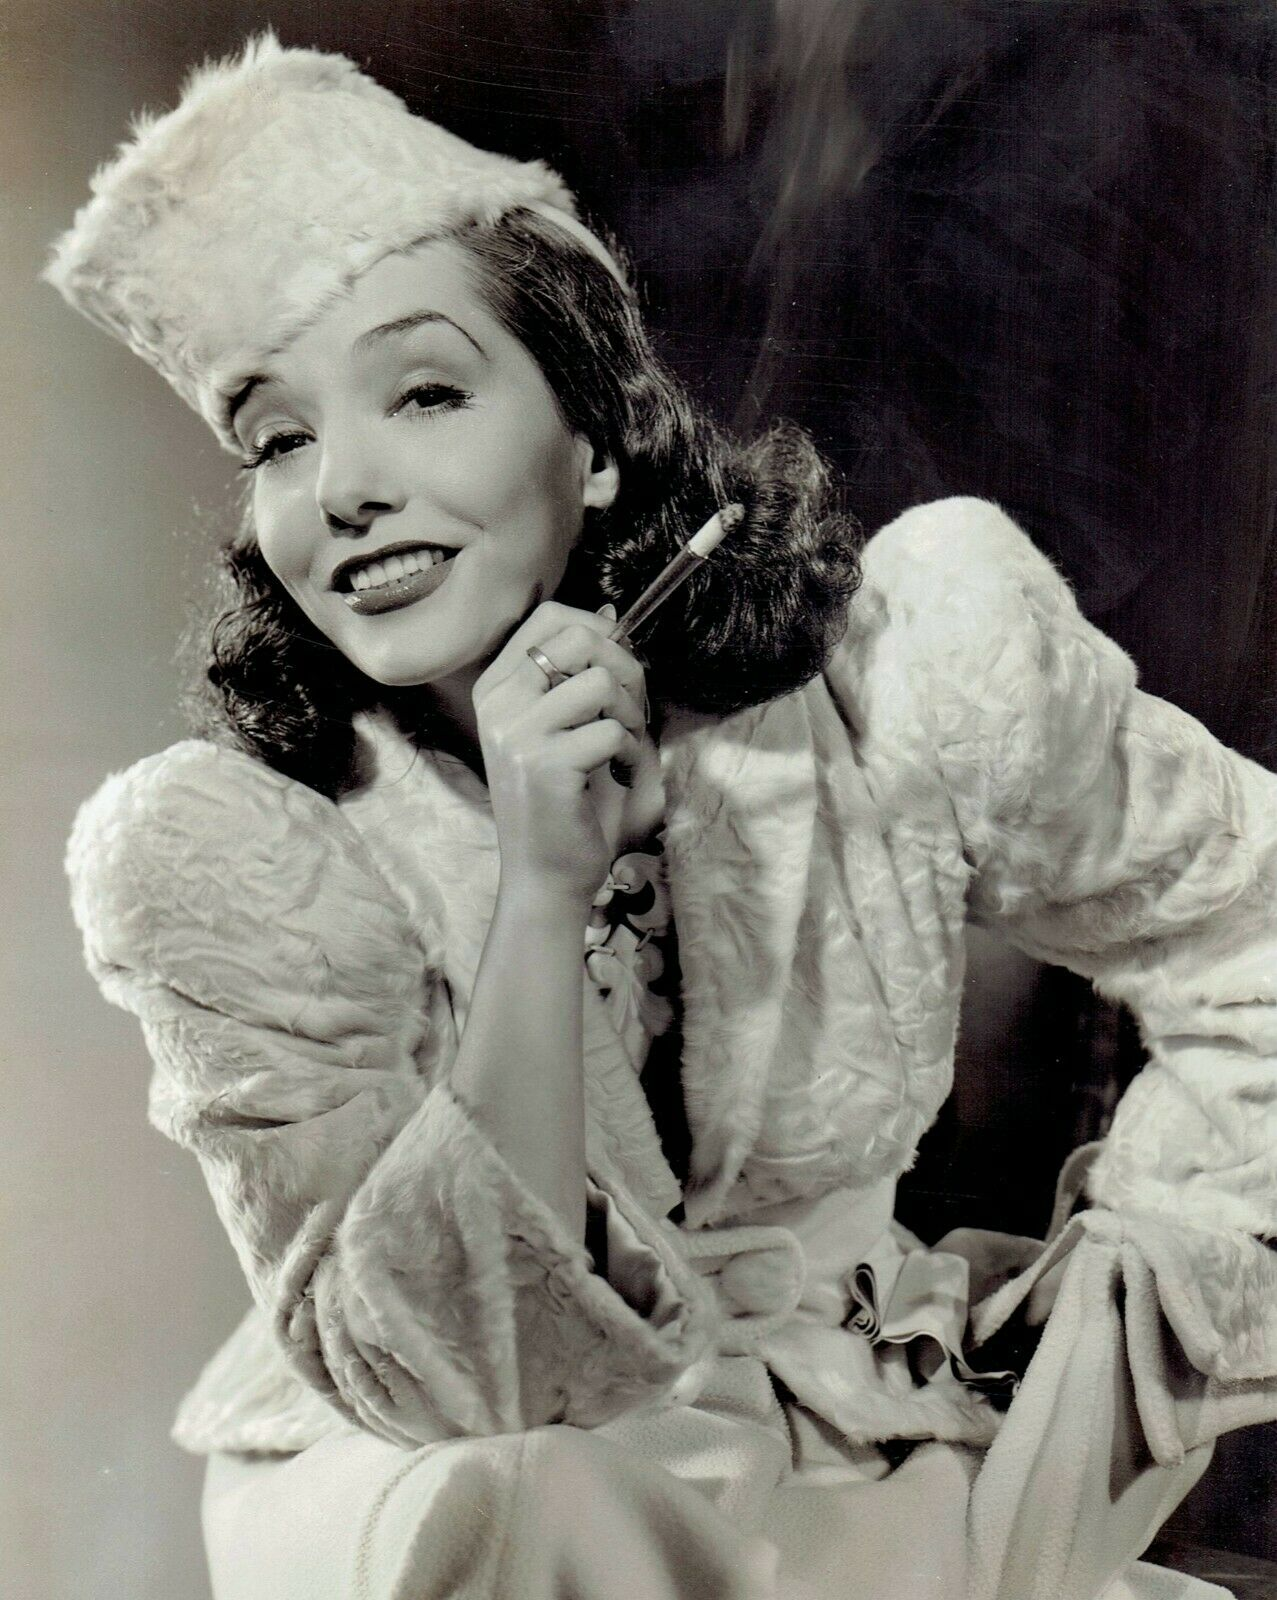 Once upon a time in paradise - Canadians in the Golden Age of Hollywood